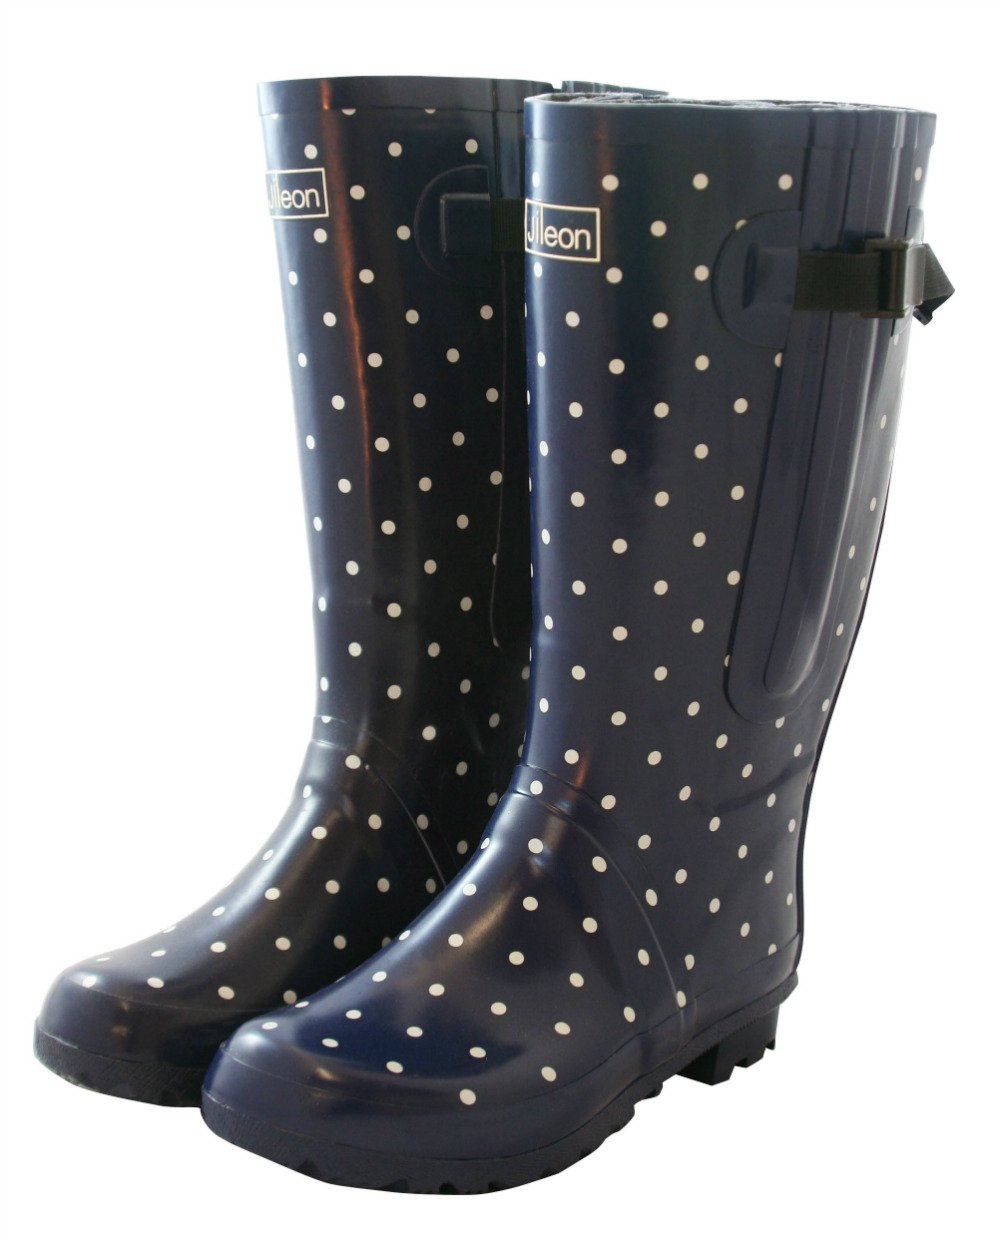 Jileon Extra Wide Calf Rubber Navy Blue Rain Boots for Women-Widest Fit Boots in The US-up to 21 inch Calves-Wide in The Foot and Ankle-Durable Boots for All Weathers- 11 (XW) by Jileon (Image #1)